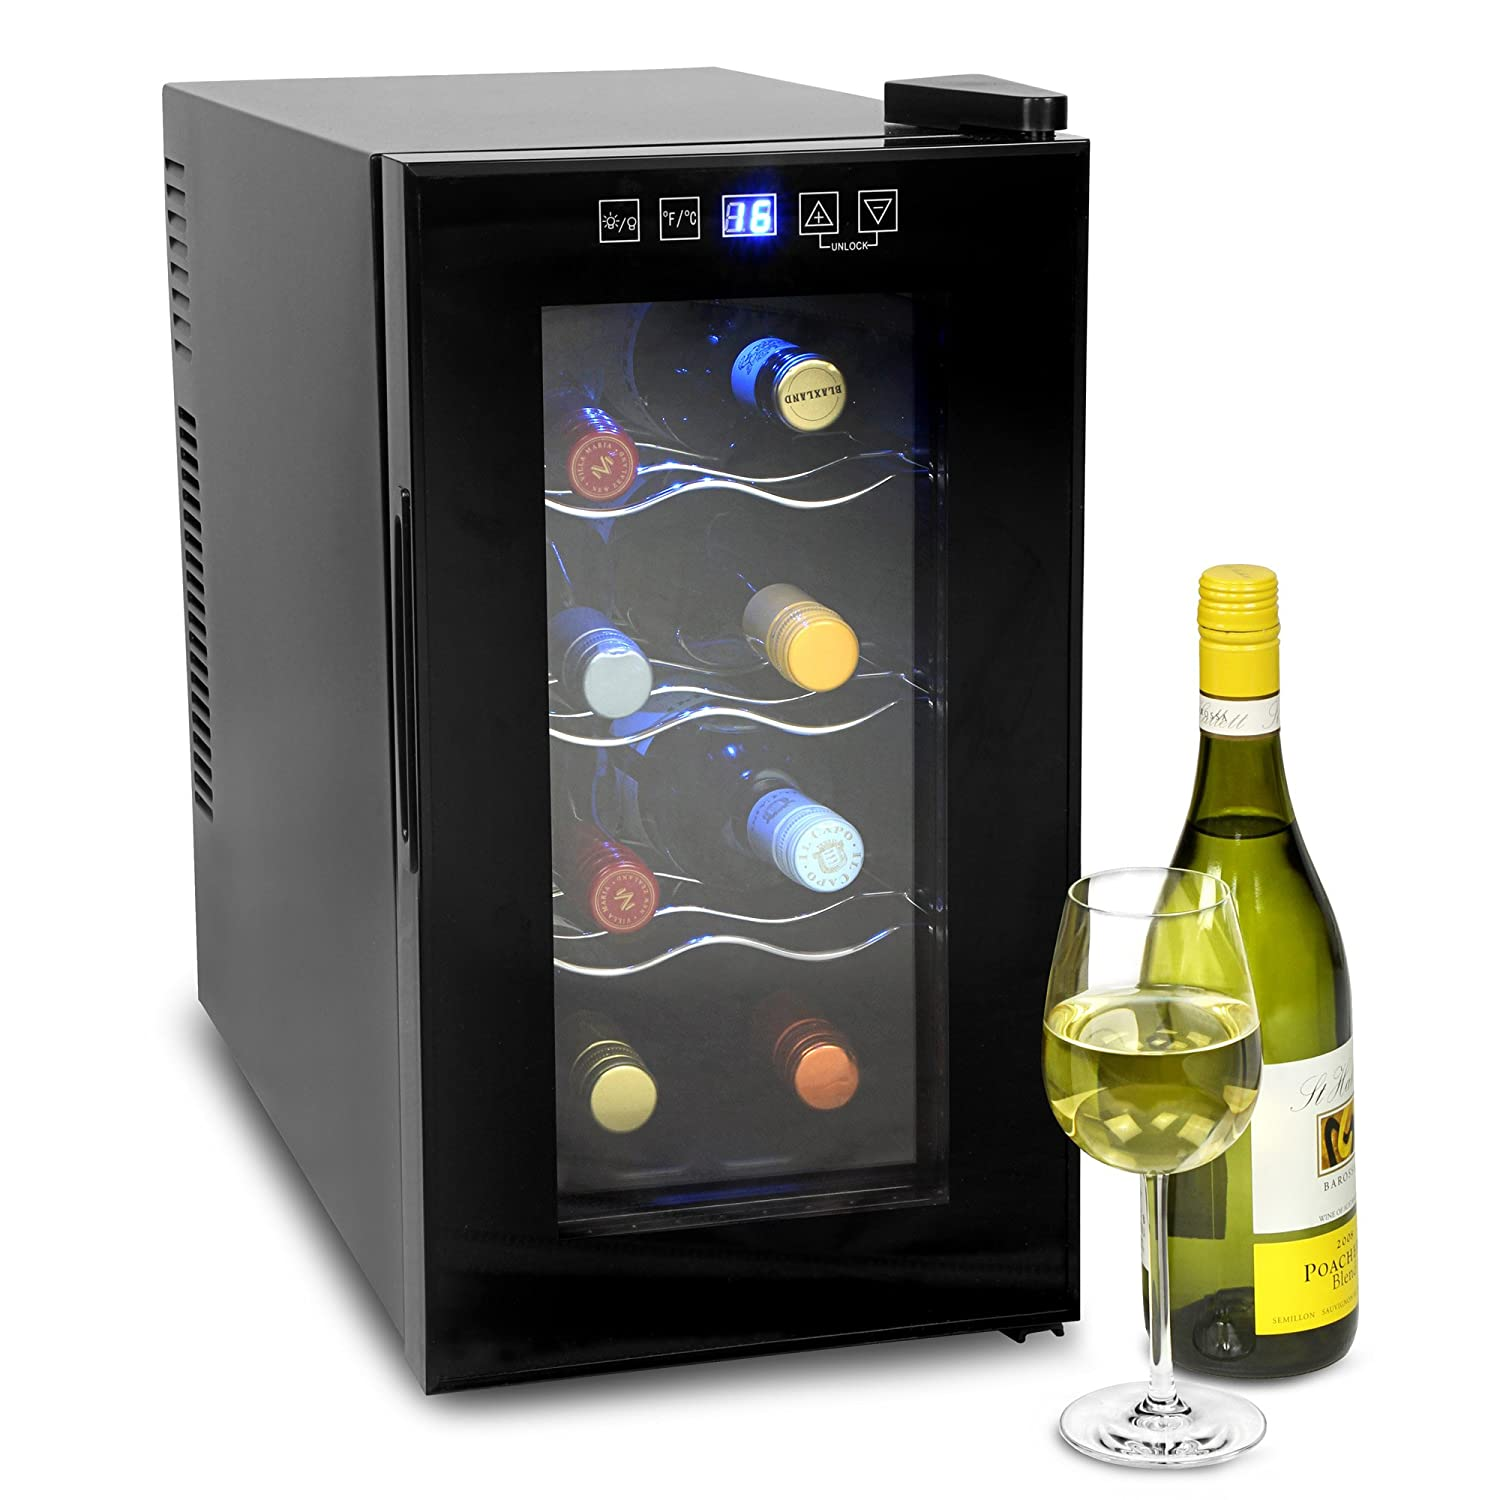 bar@drinkstuff VinoTech 8 Bottle Wine Cellar - 25 Litre Digital Wine Cooler and Warmer 8ºC to 18ºC